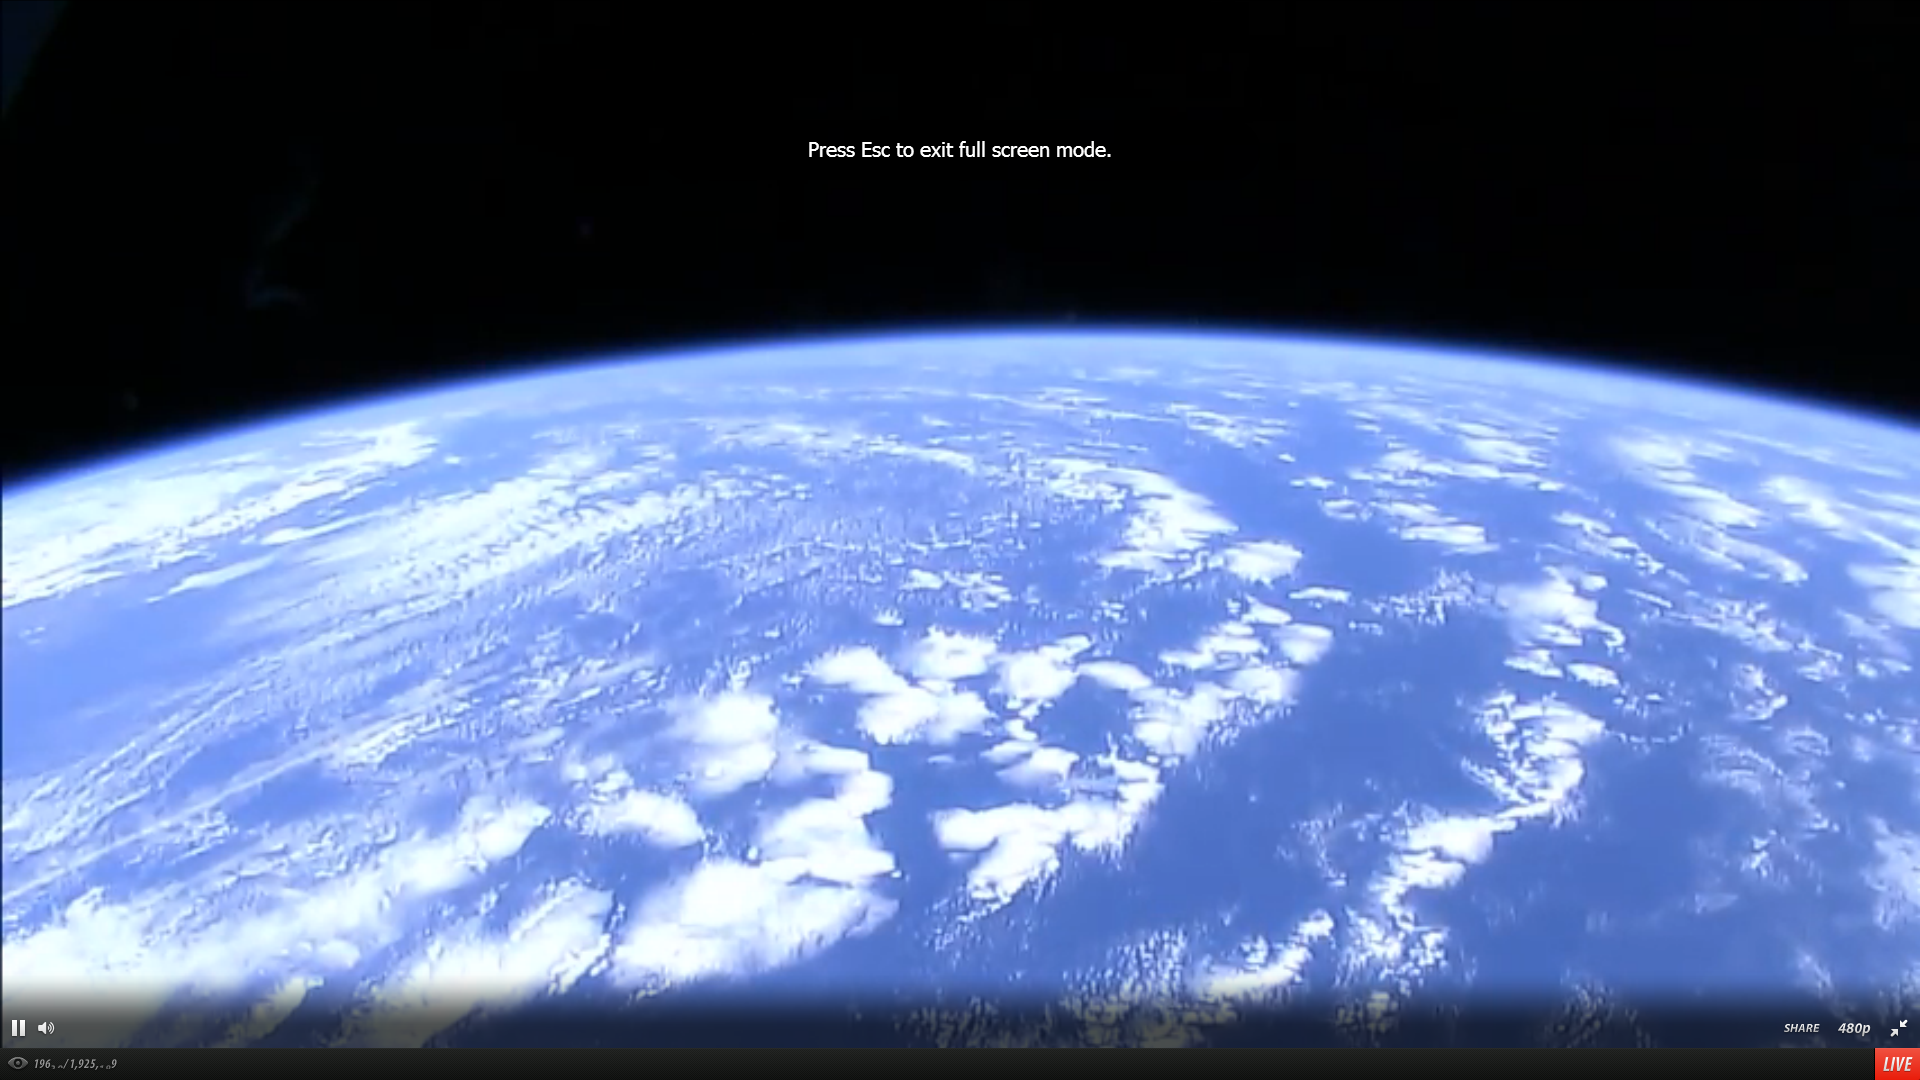 Live Streaming Video From Space!